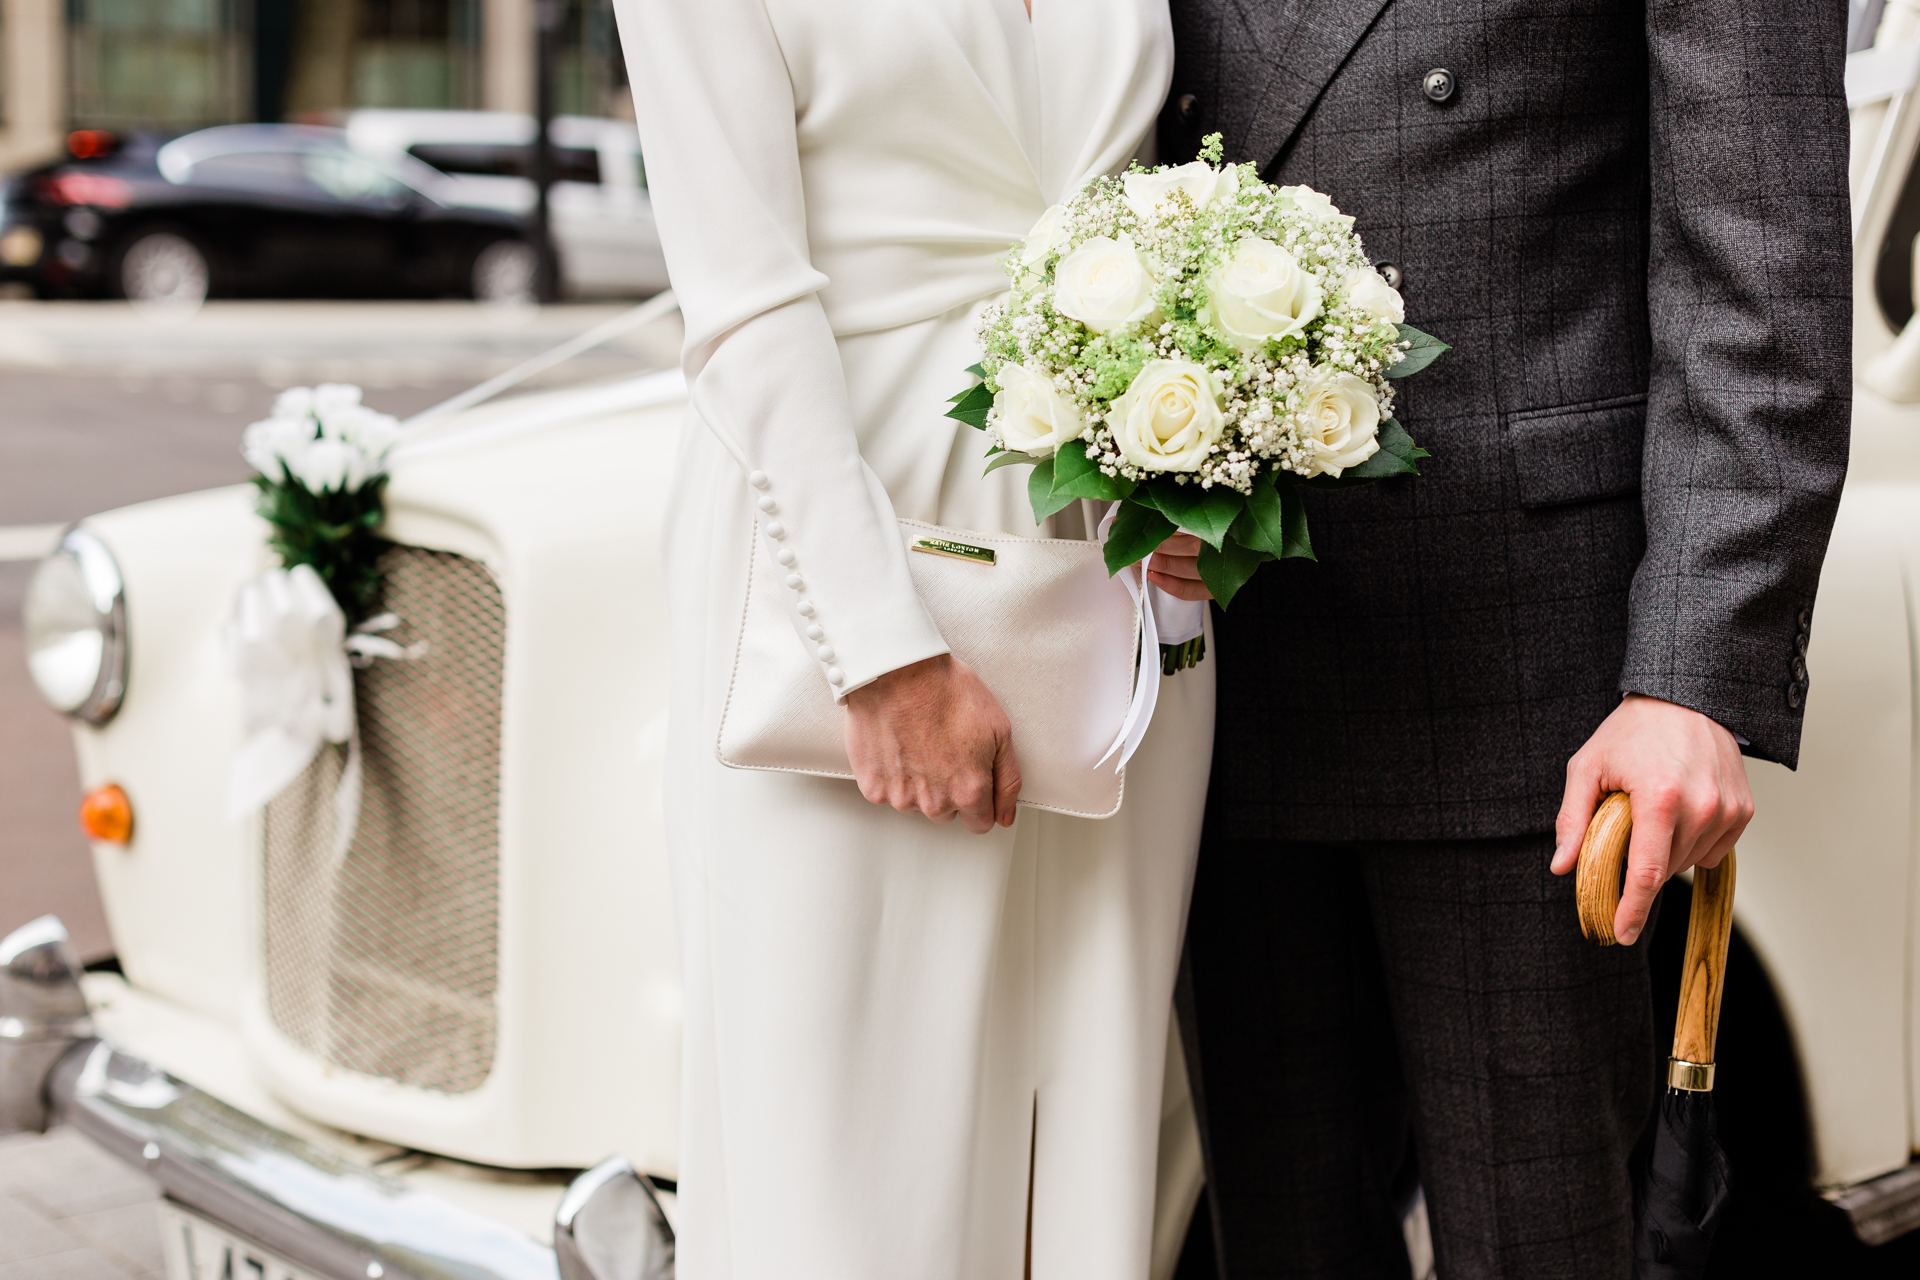 Central London Elopement Photography | The bride and groom arriving together with the focus on their details